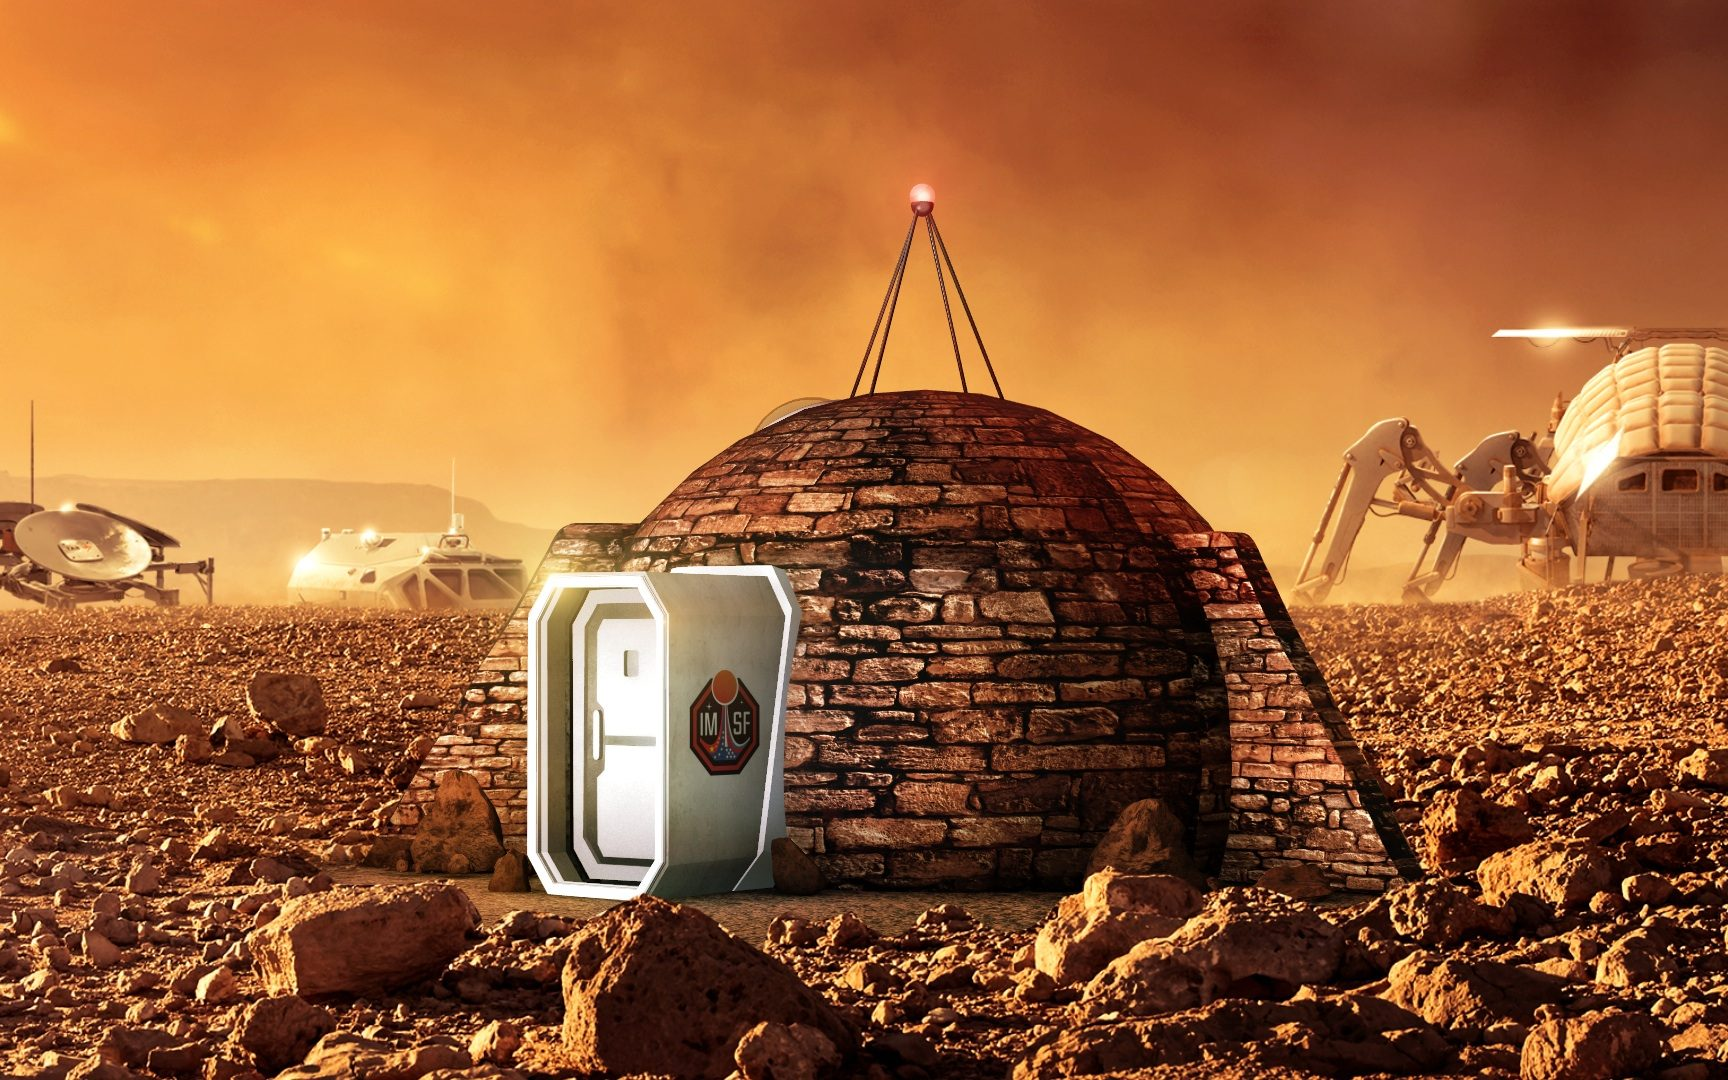 What your home will look like when you live on Mars